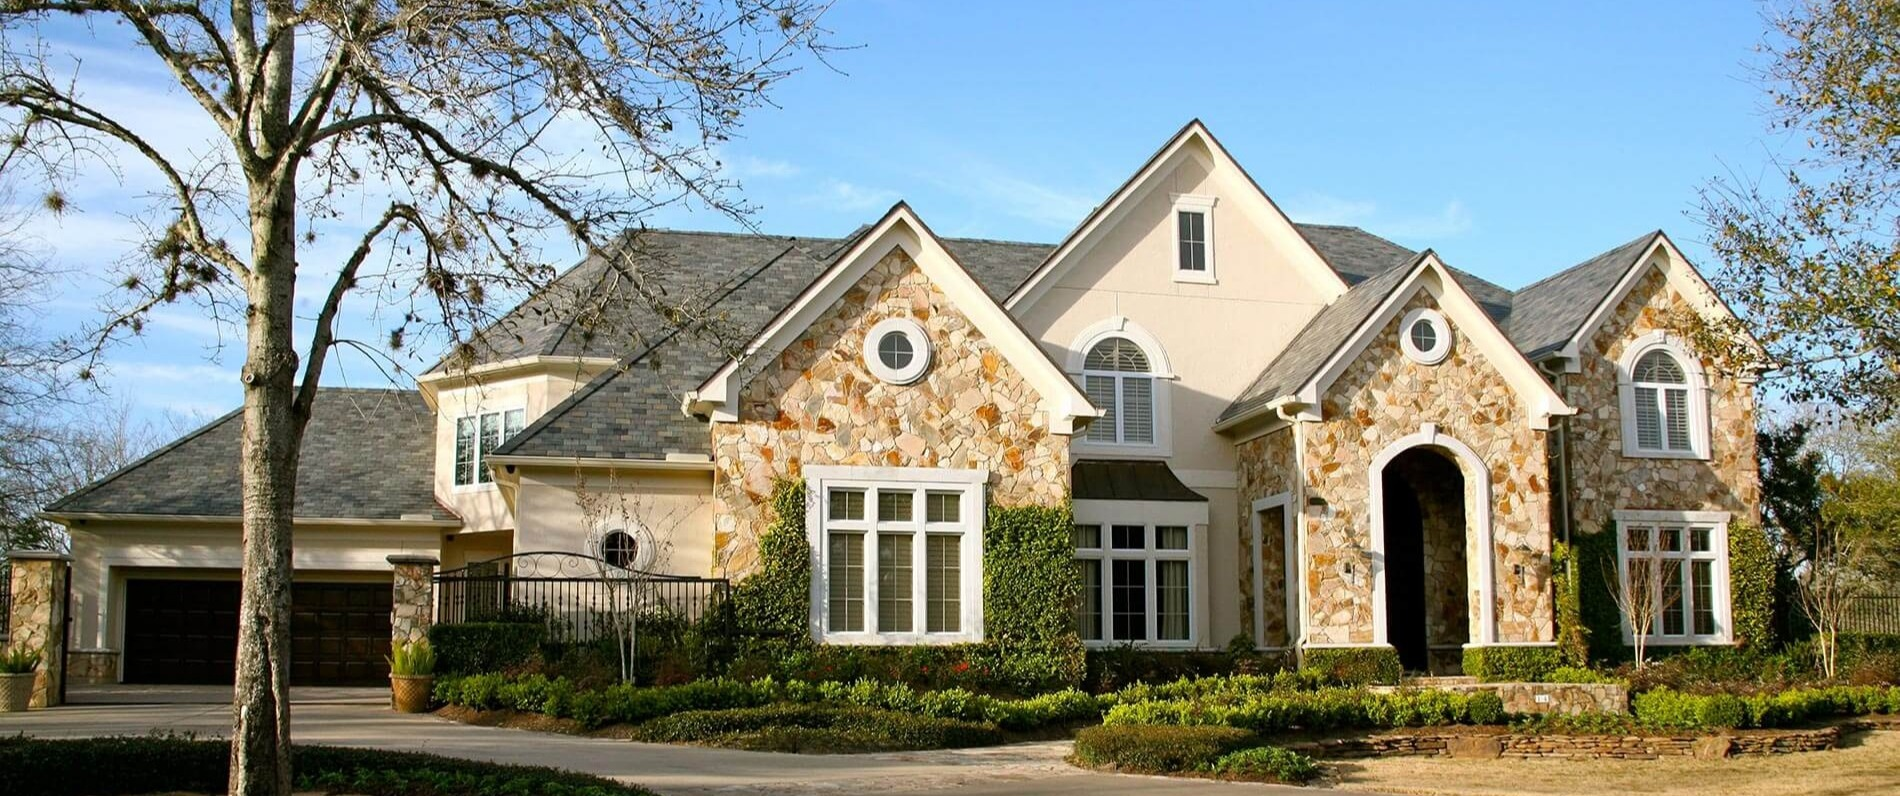 luxury custom built Tudor